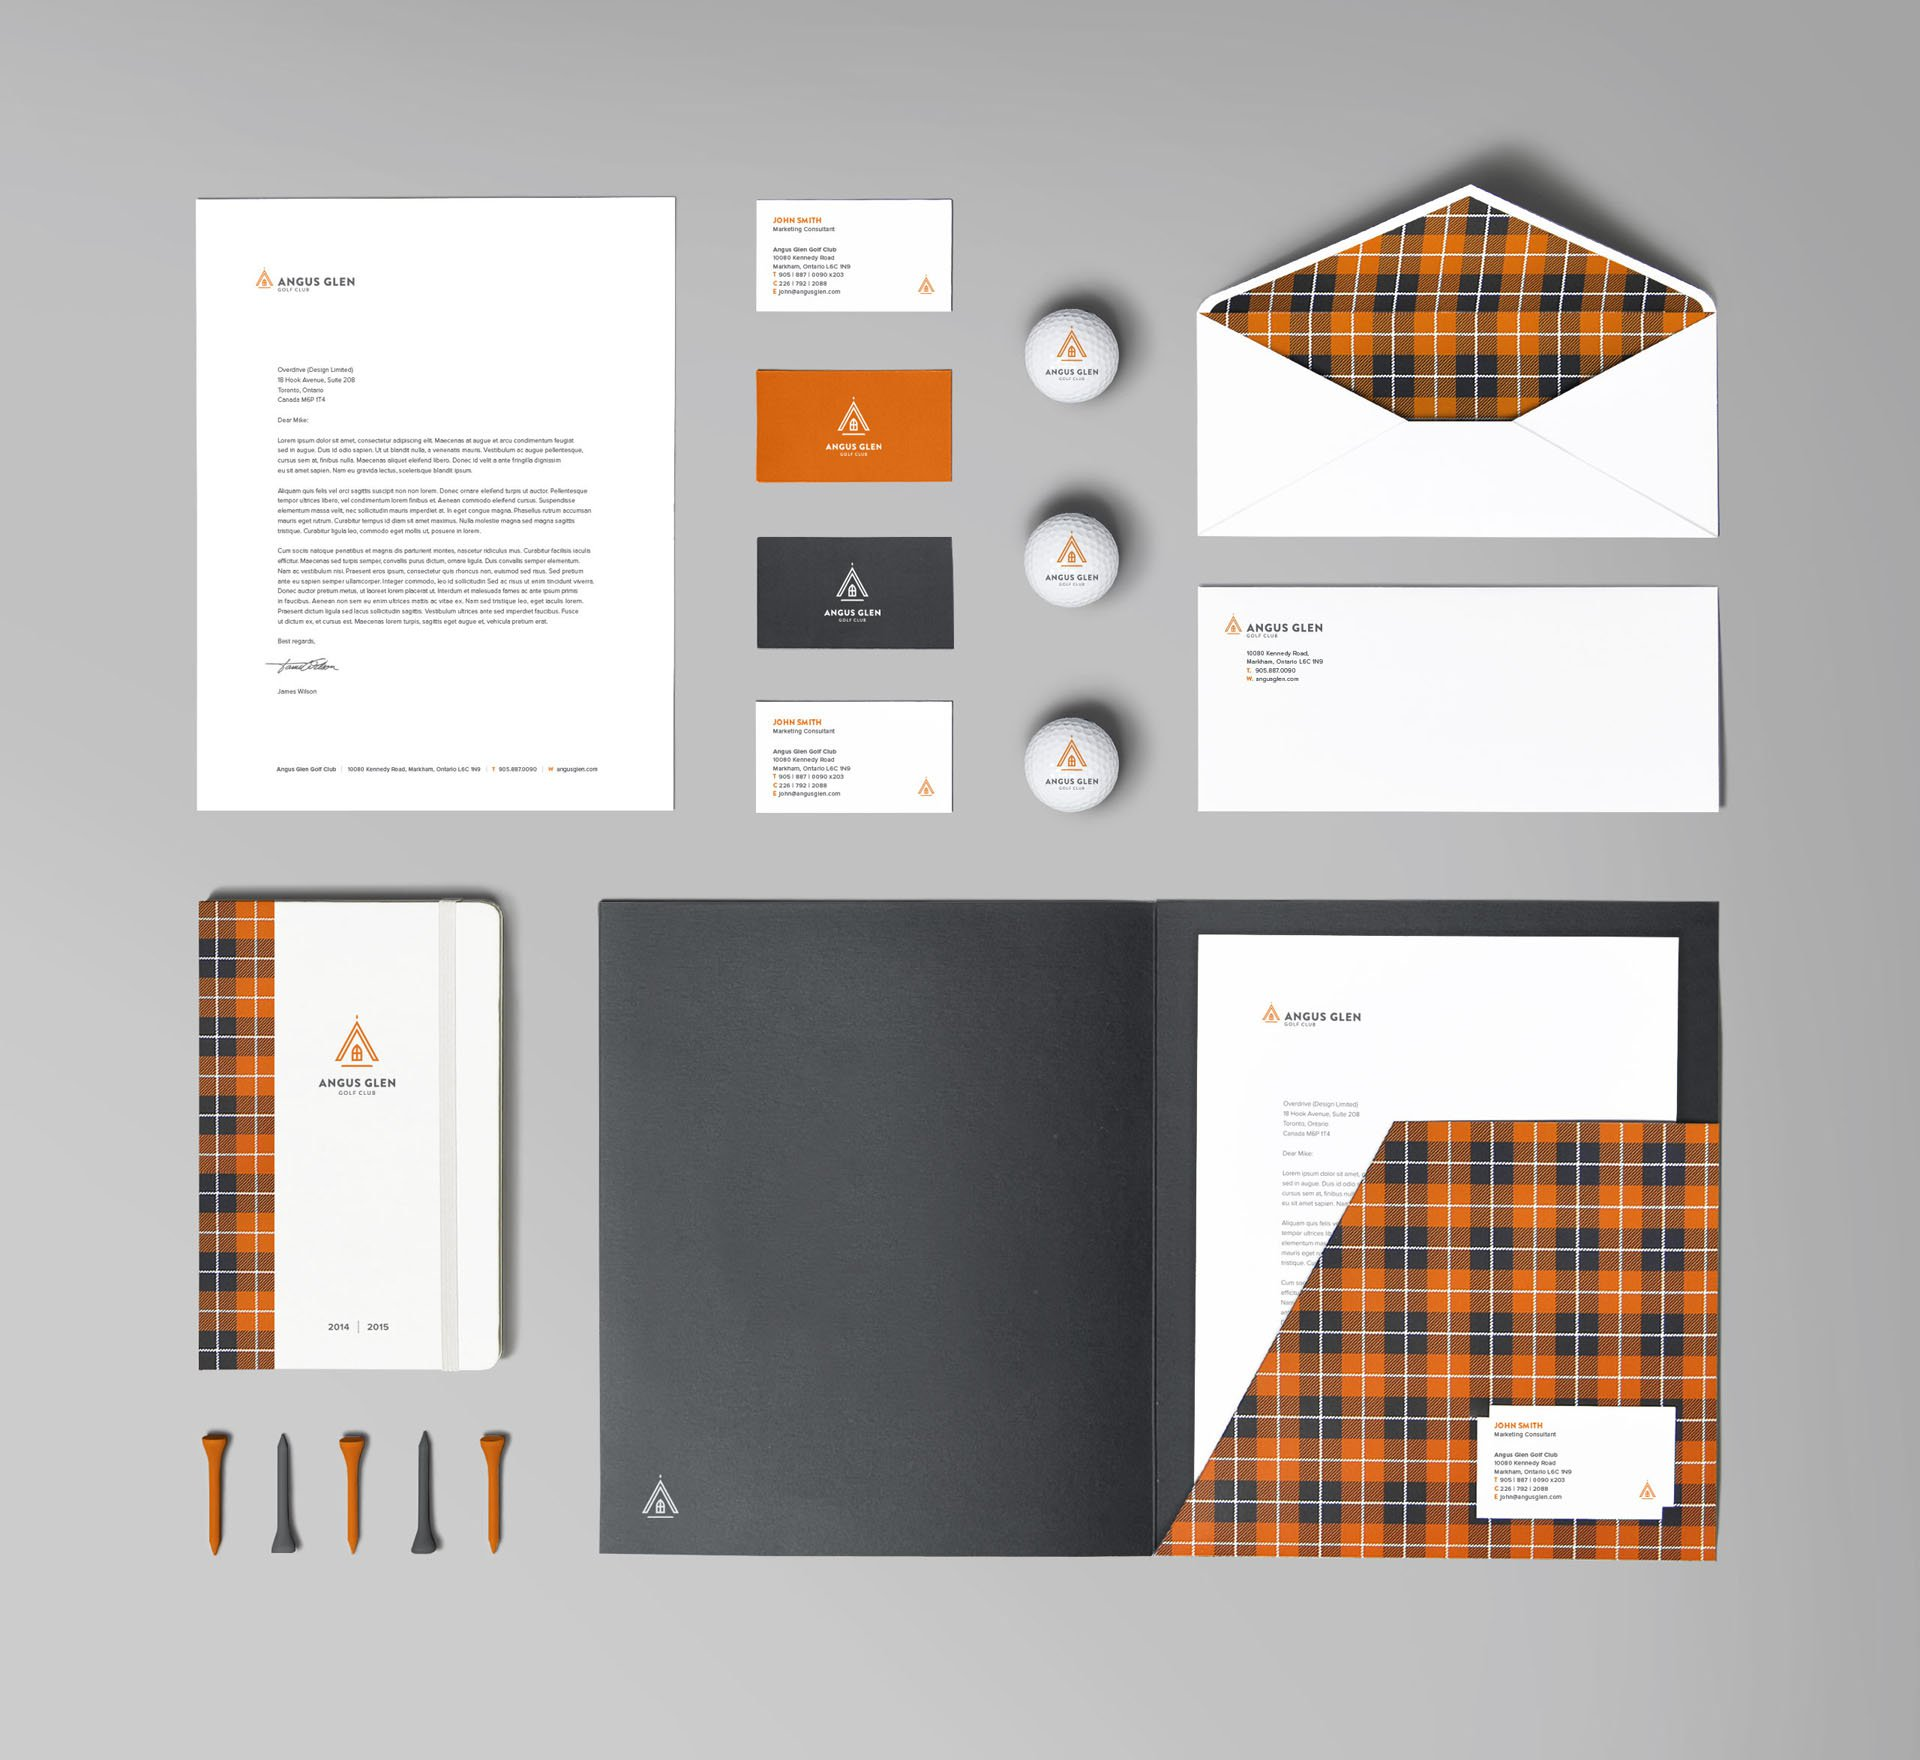 angus glen golf course stationery